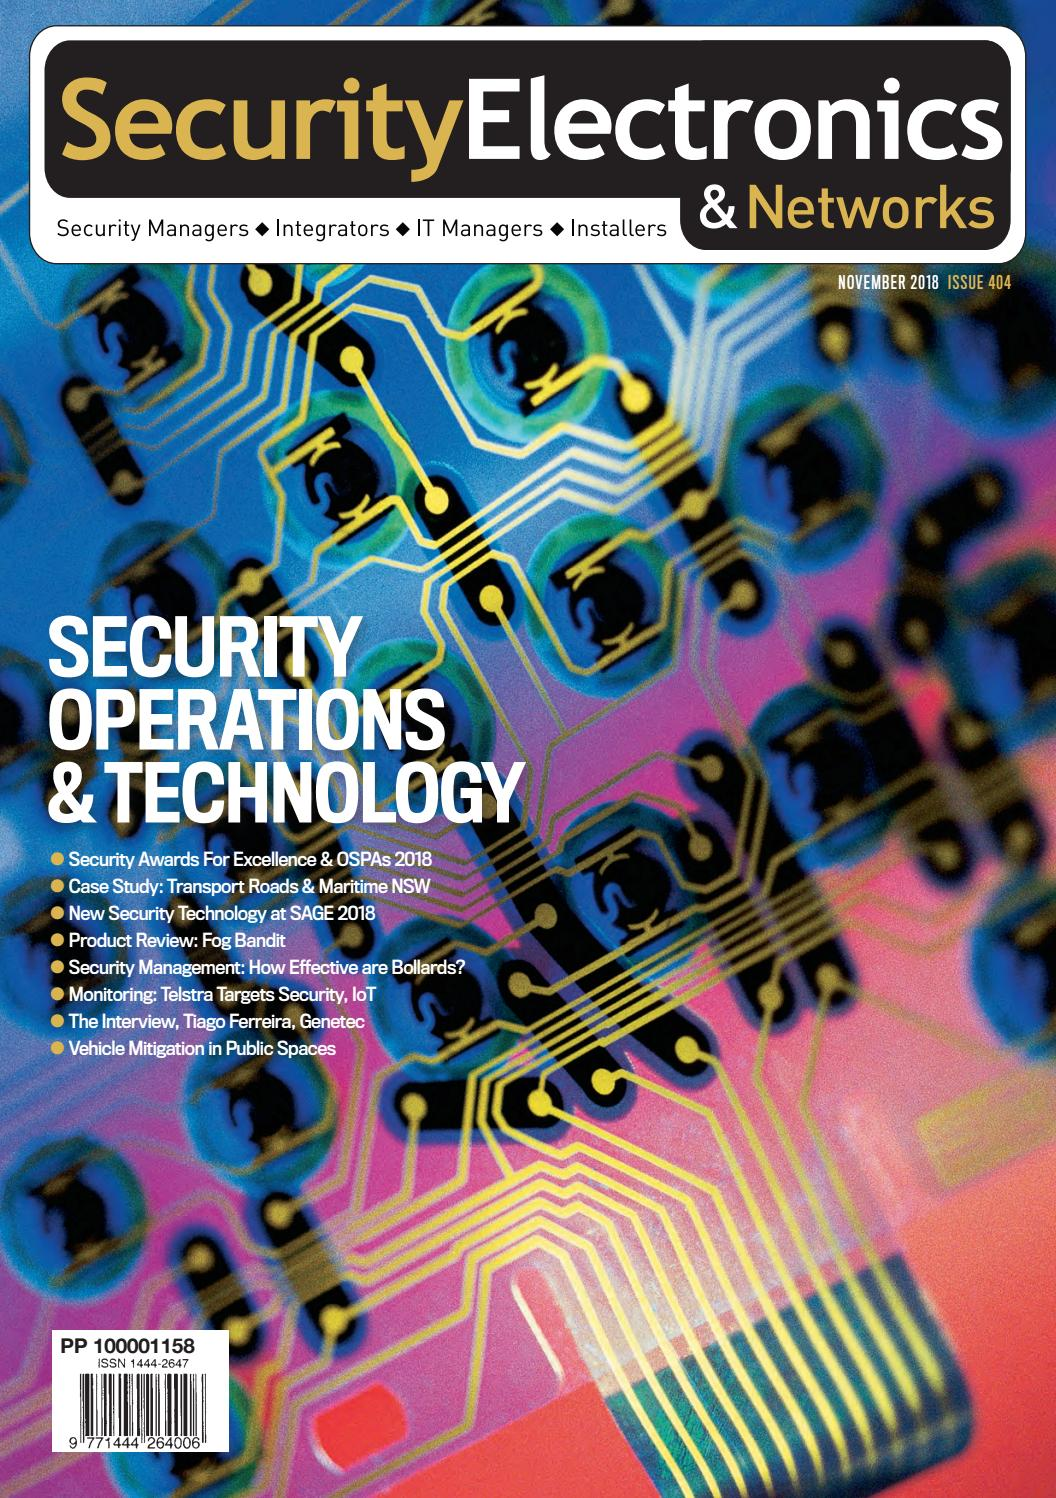 SEN November 2018 by Security Electronics & Networks